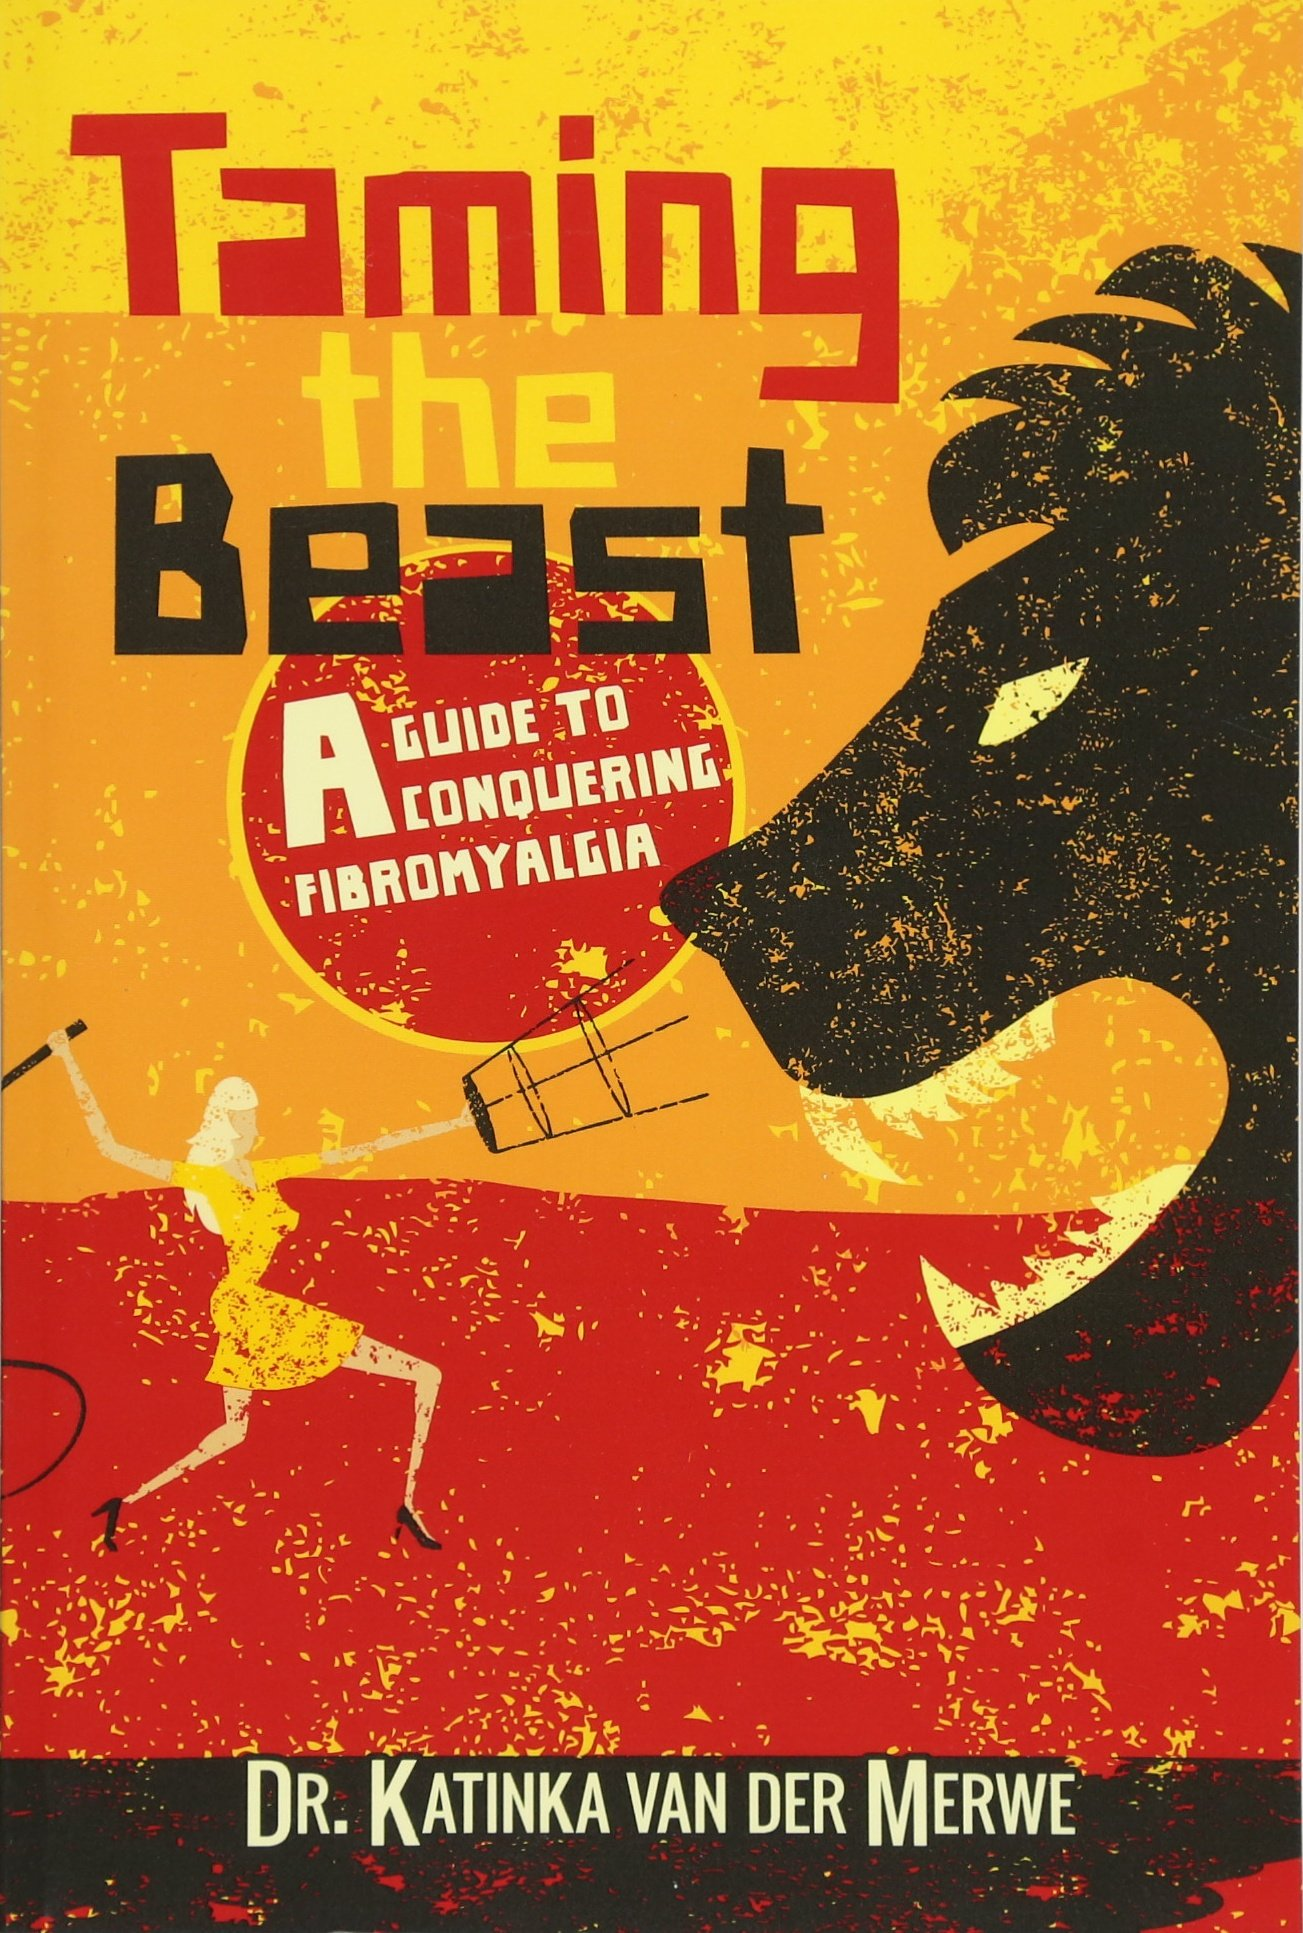 Taming the Beast: A Guide to Conquering Fibromyalgia PDF